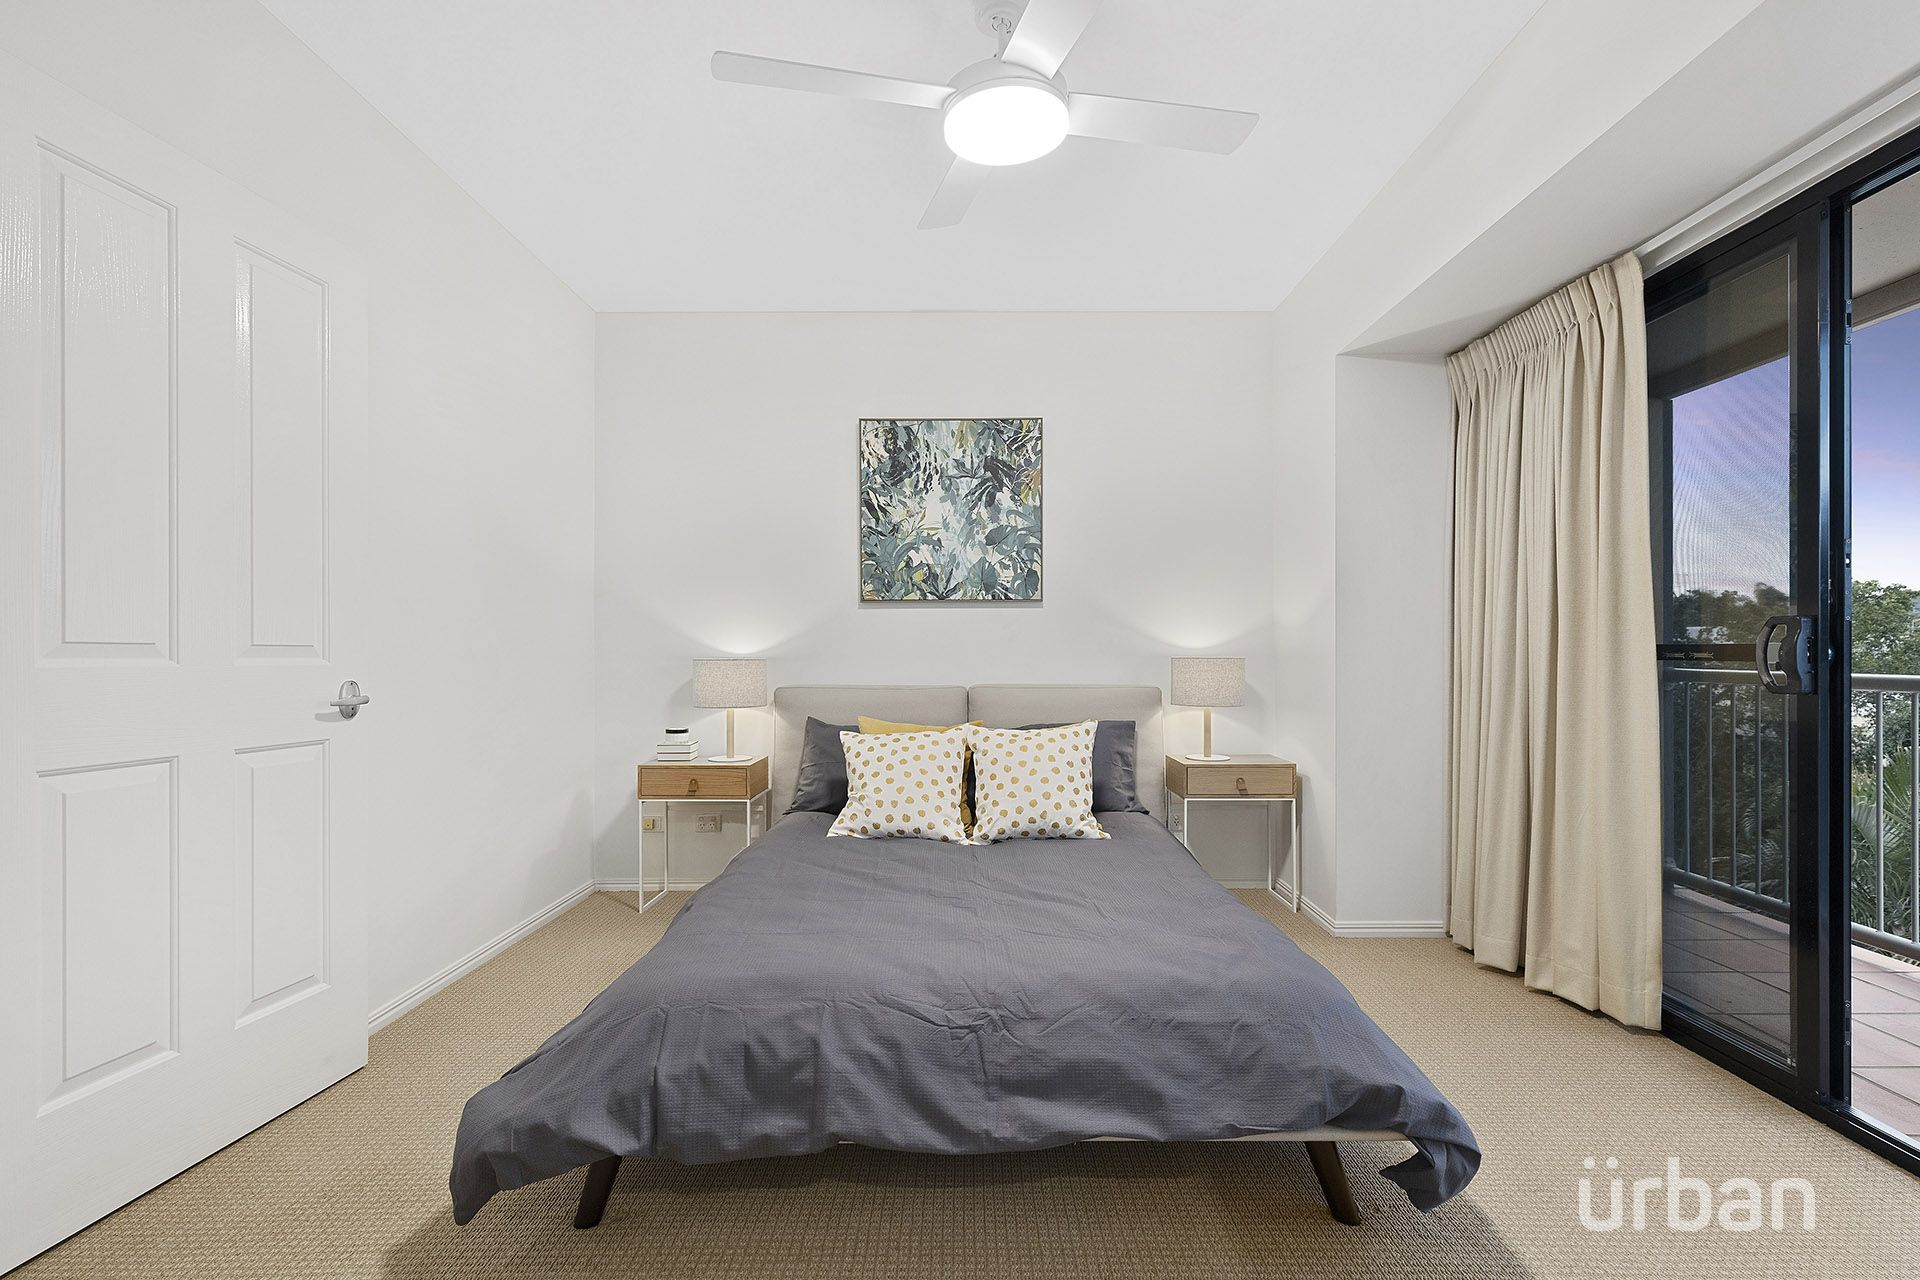 2/65 Woodstock Road Toowong 4066